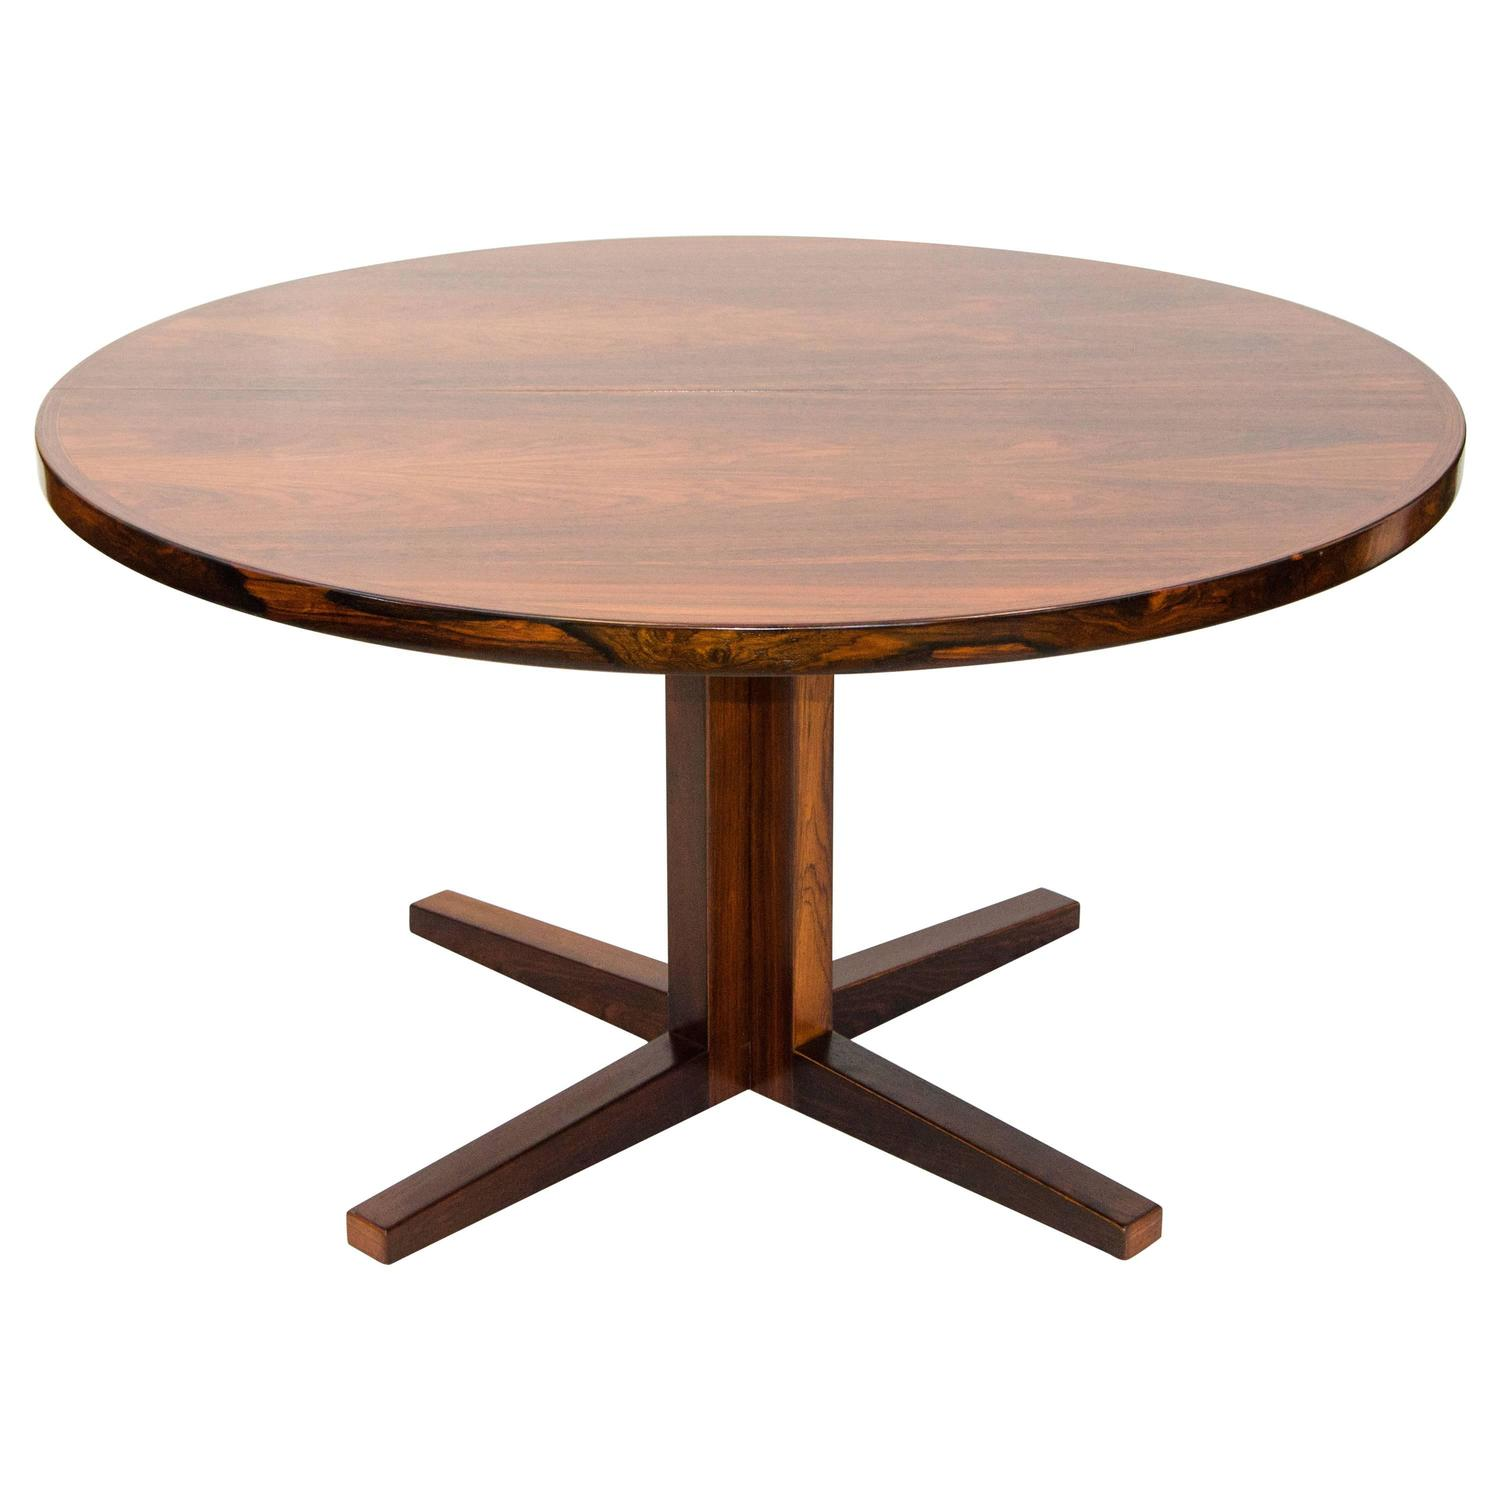 Danish rosewood round pedestal dining table one leaf at for Pedestal dining table